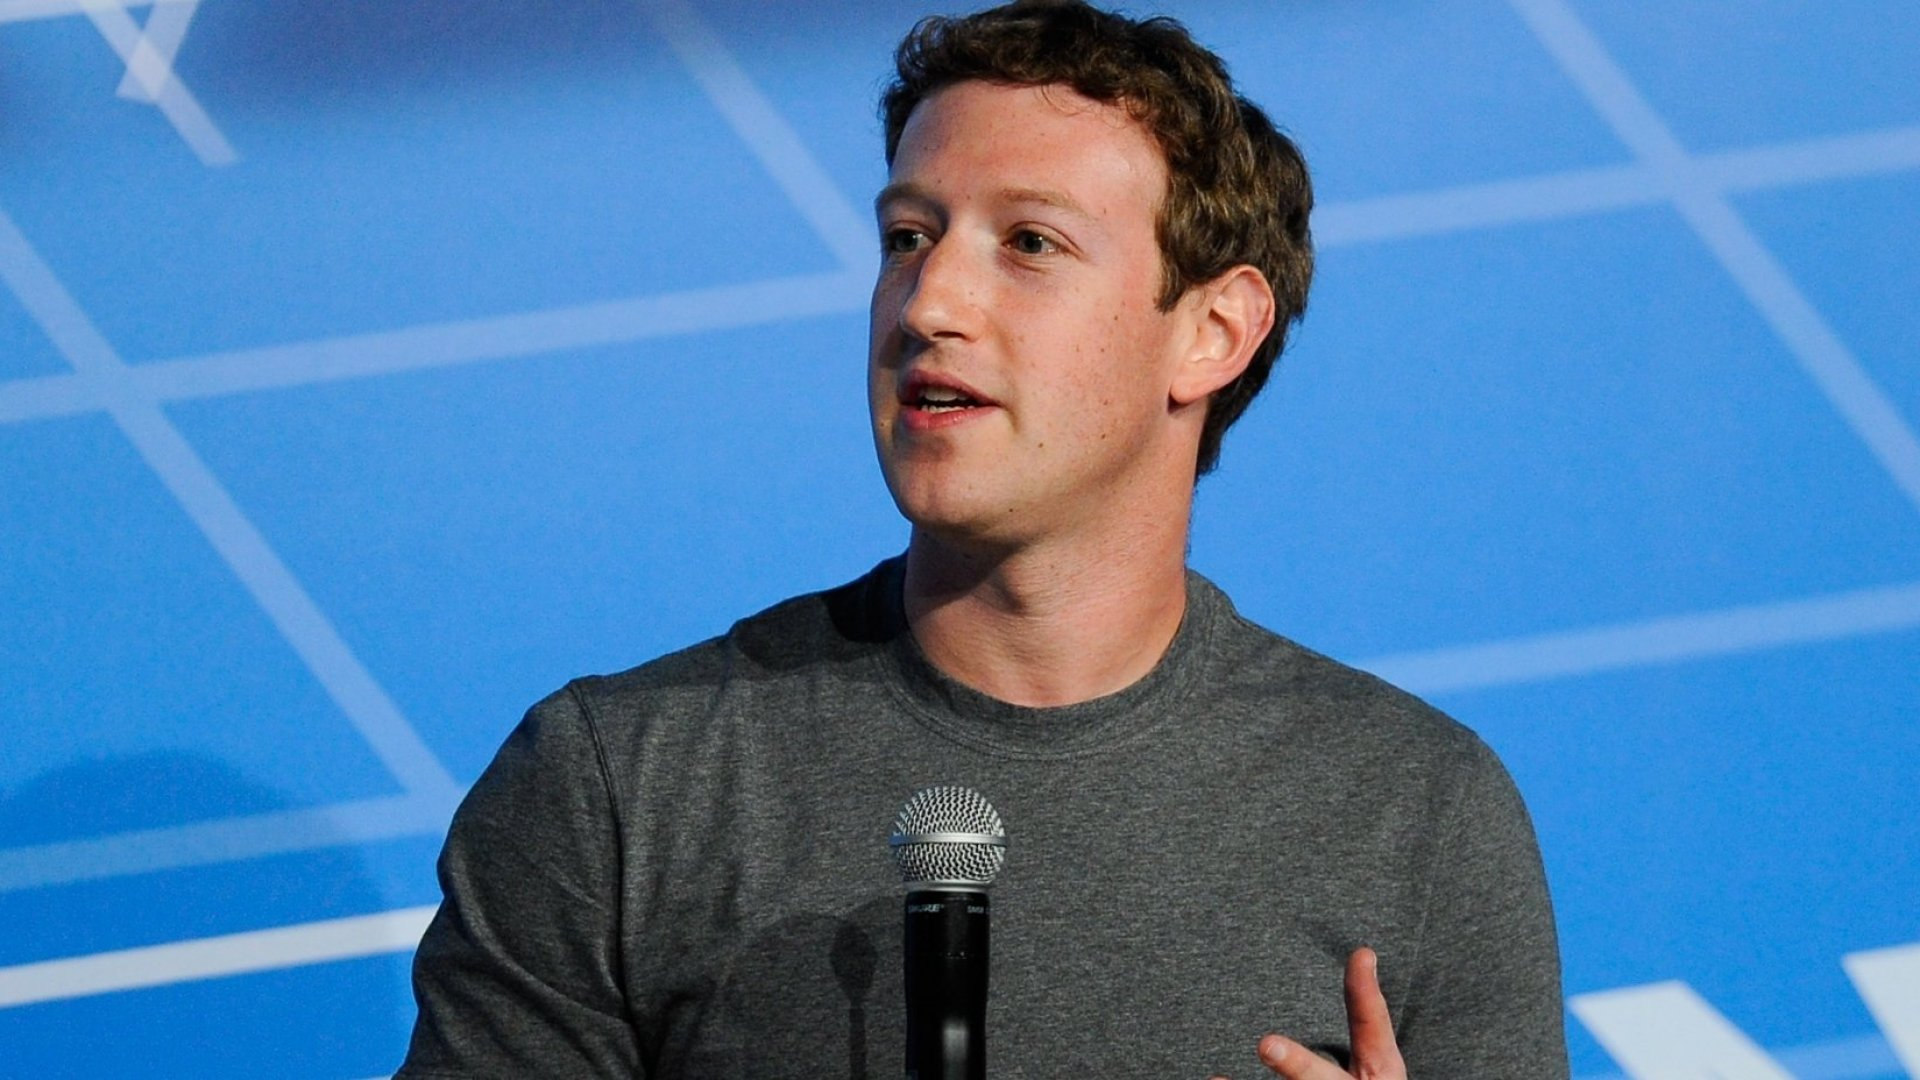 Mark Zuckerberg's Crazy Vision for How You'll Post Status Updates to Facebook in the Future